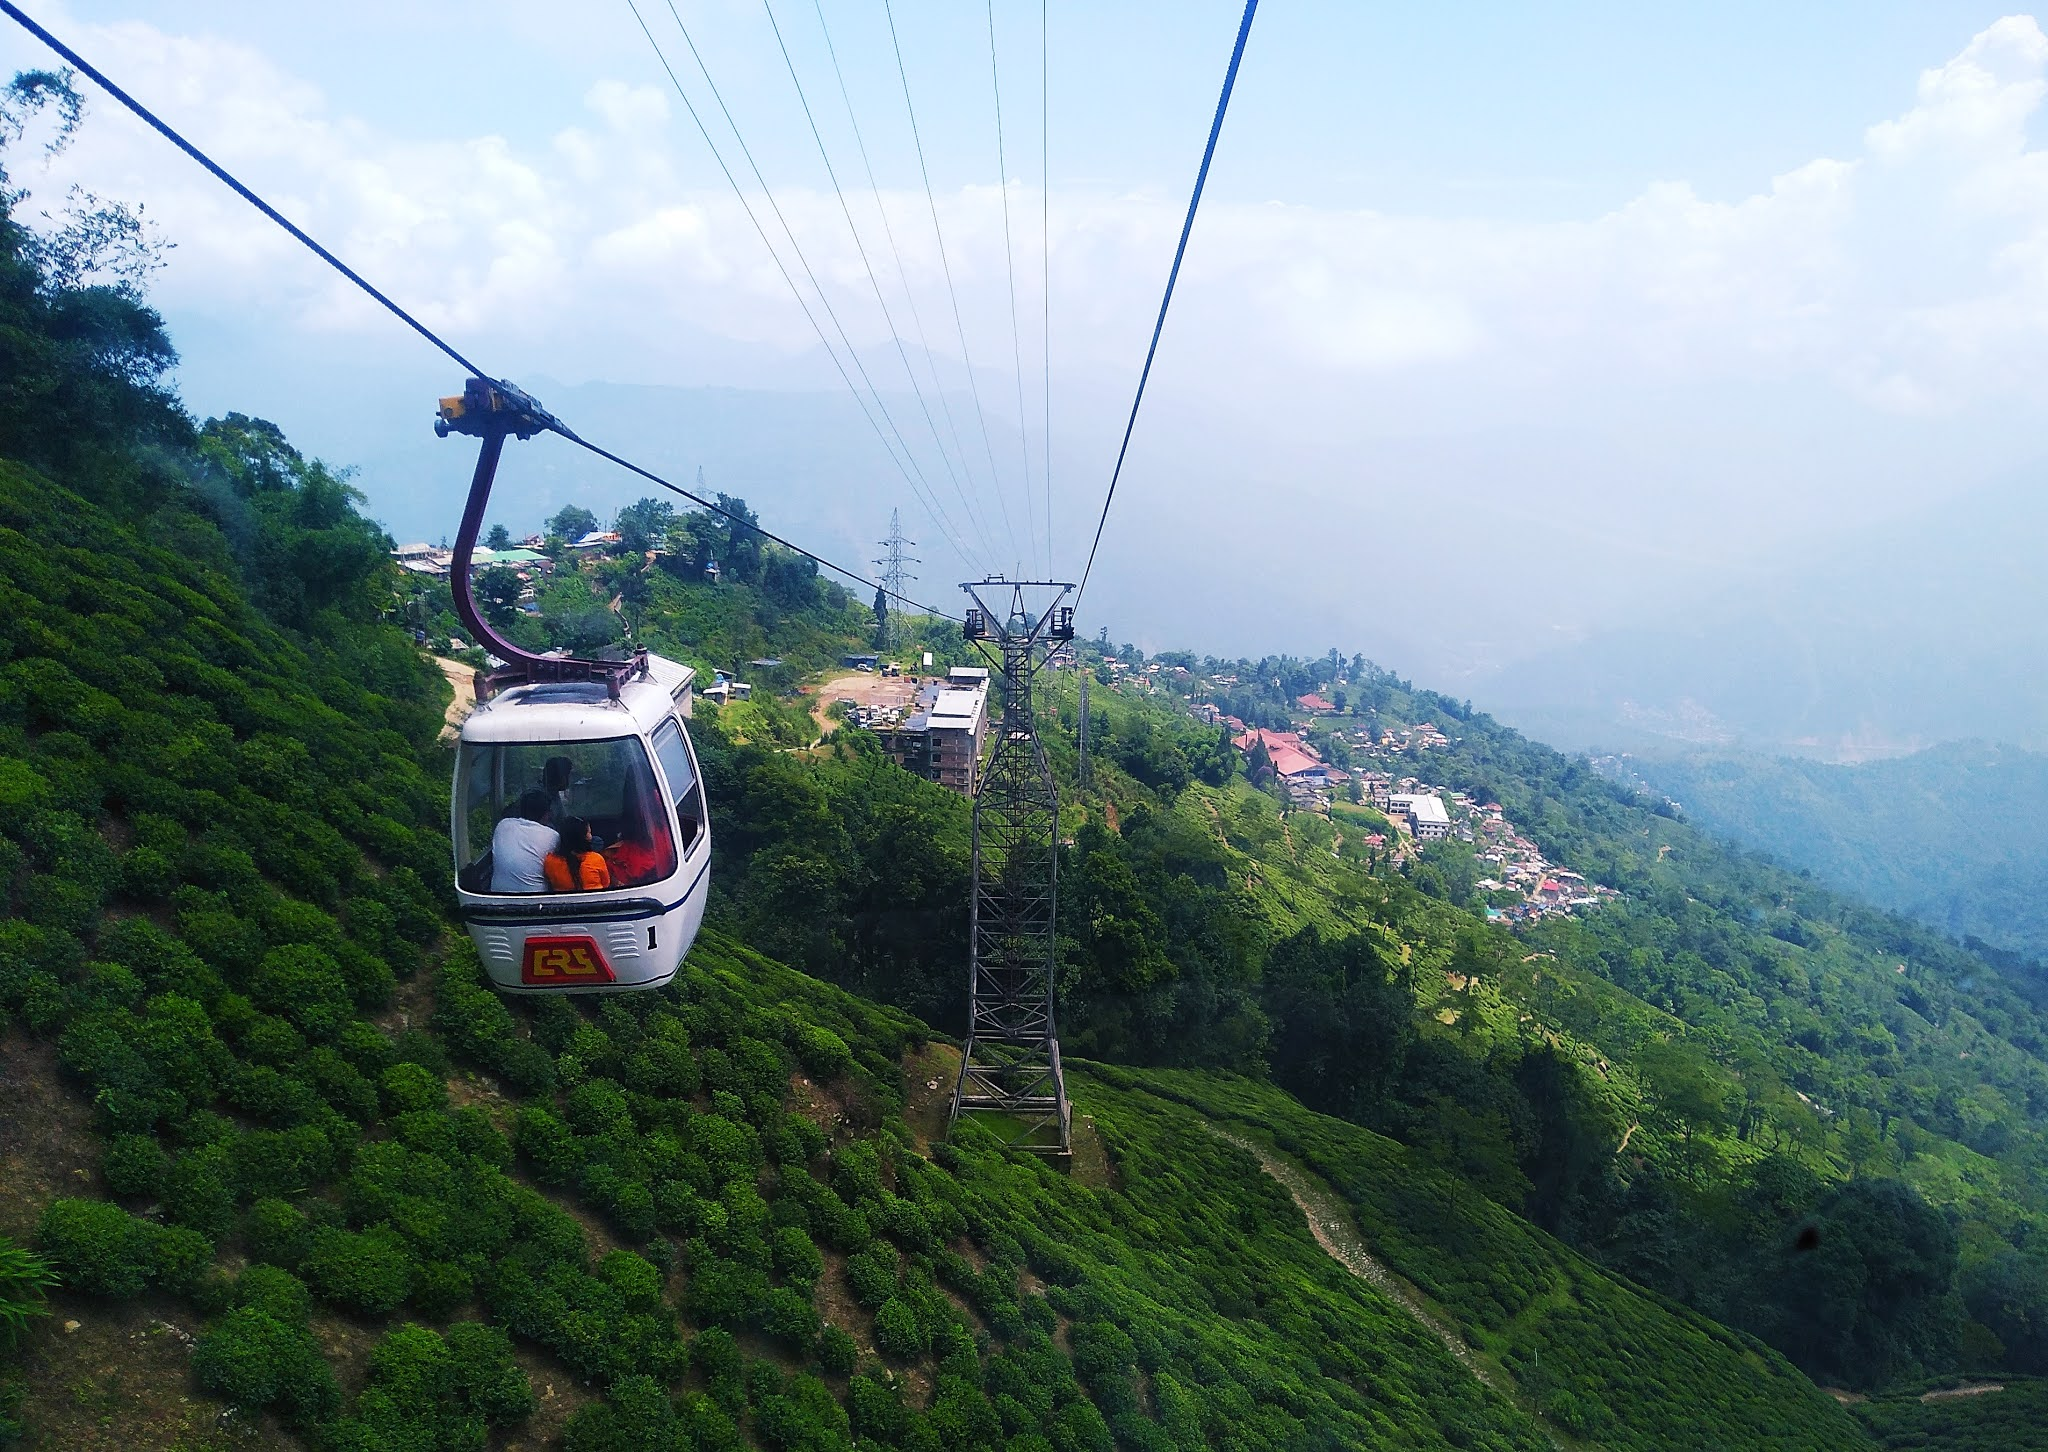 mindblowing view from Ranjit vally Roapway and panoramic view of darjeeling